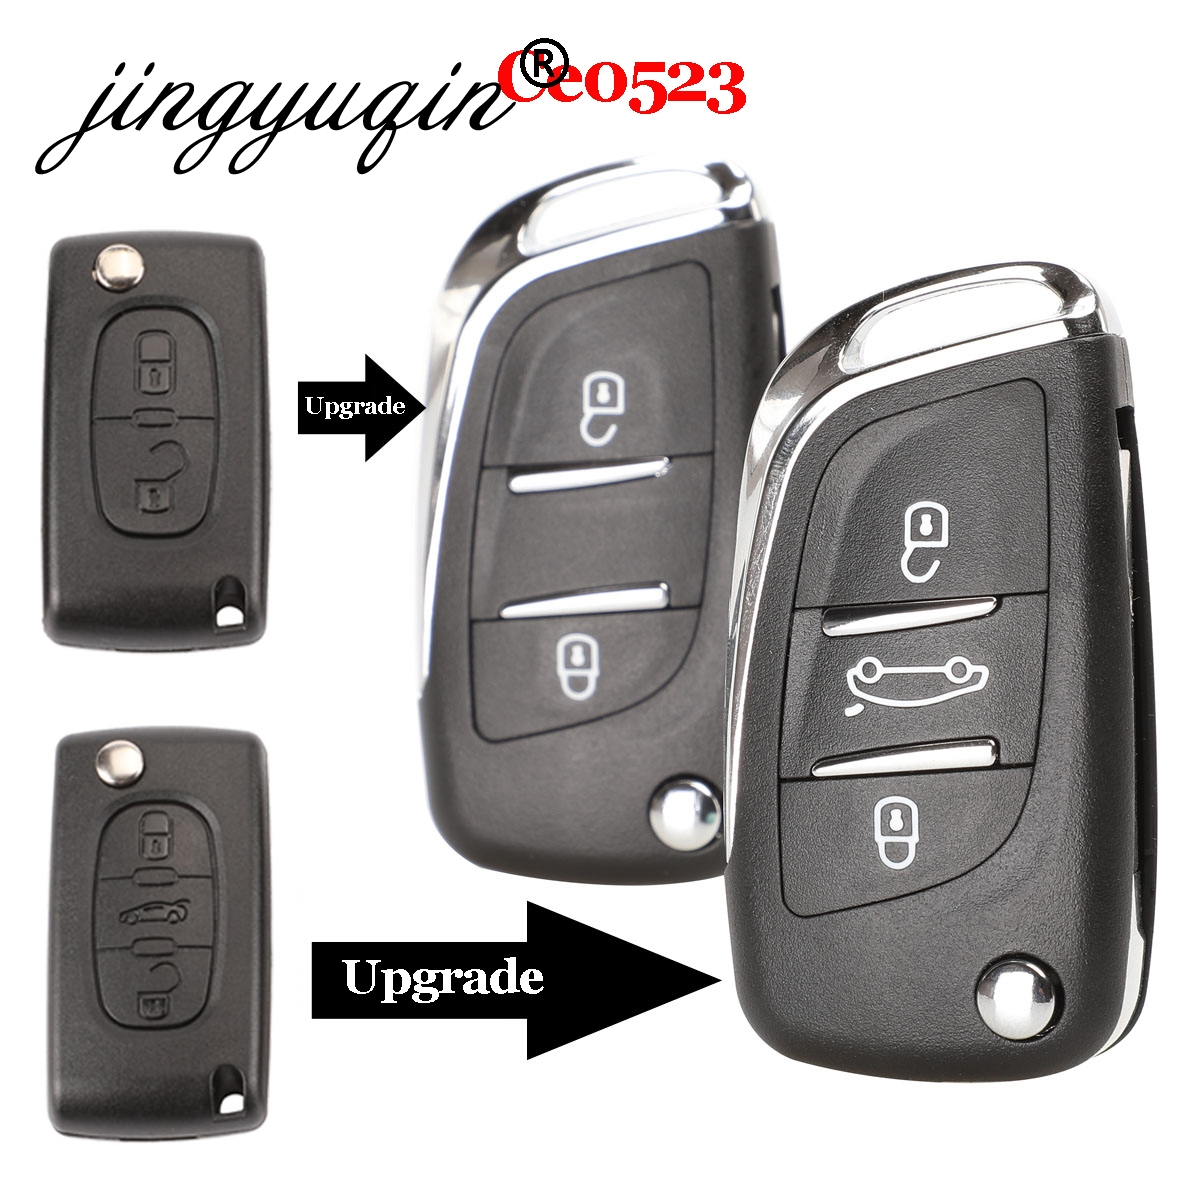 jingyuqin CE0523 Modified Flip Folding Key Shell For Peugeot 306 407 807 Partner Remote VA2/HU83 Blade Entry Fob Case 2/3 Button(China)